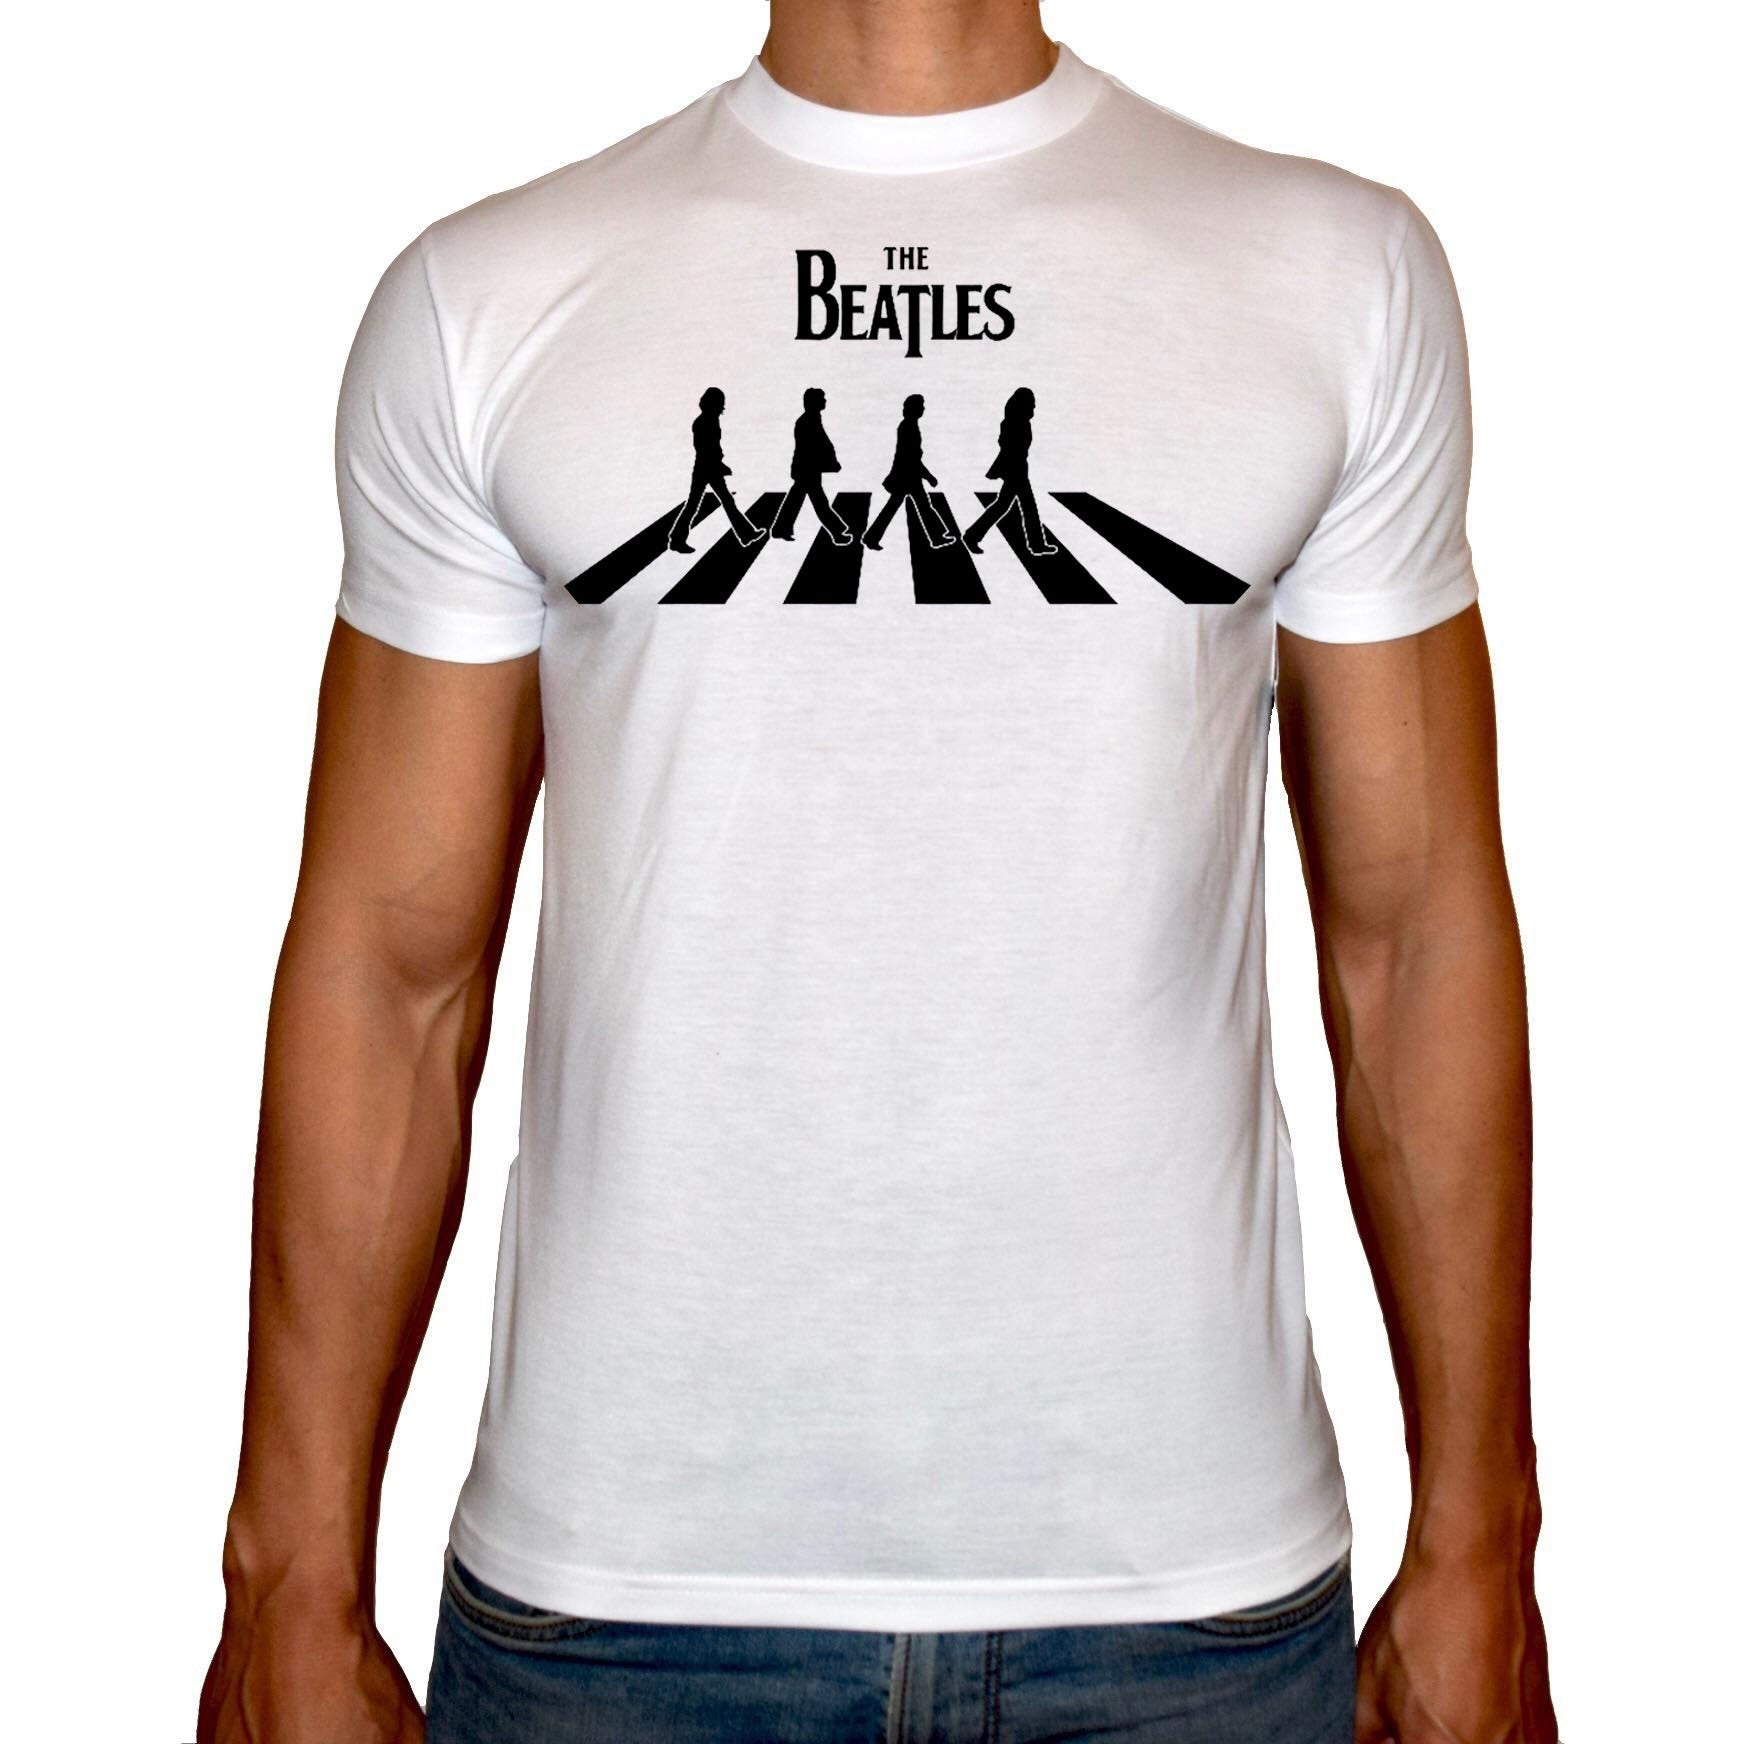 Phoenix WHITE Round Neck Printed T-Shirt Men (The beatles)